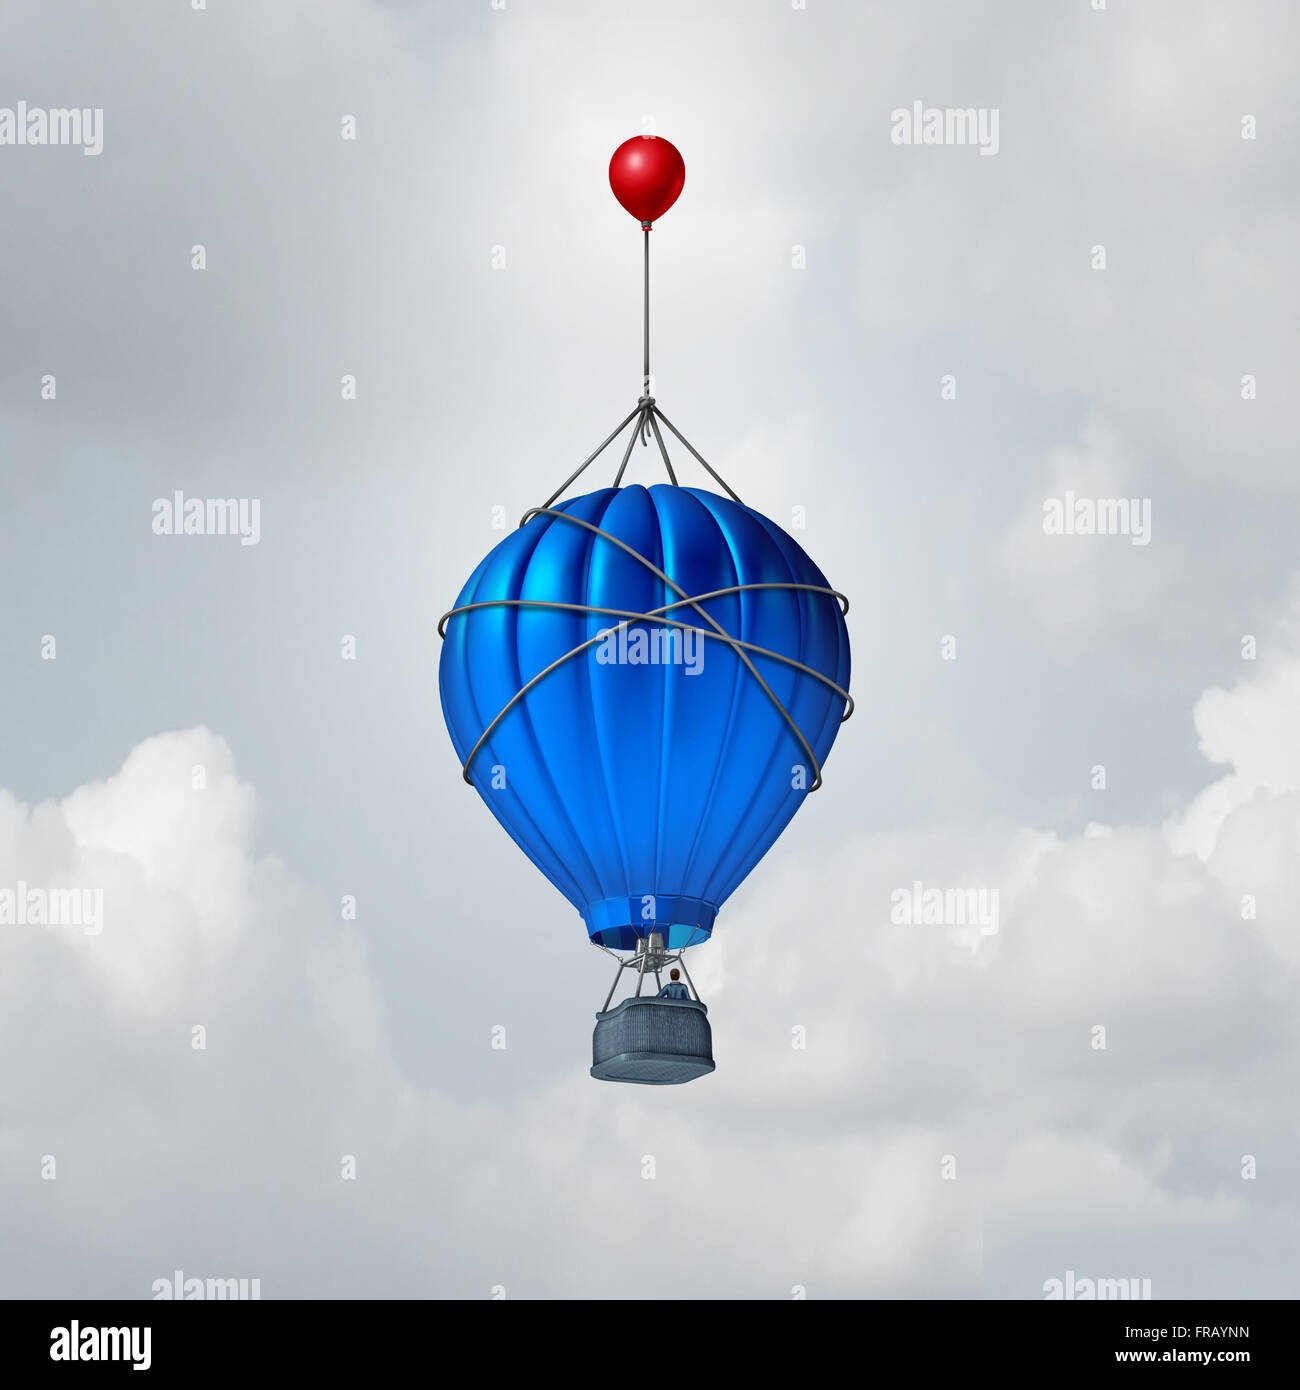 Extra help business concept or a metaphor for over and above symbol as a hot air balloon being reinforced by an - Stock Image